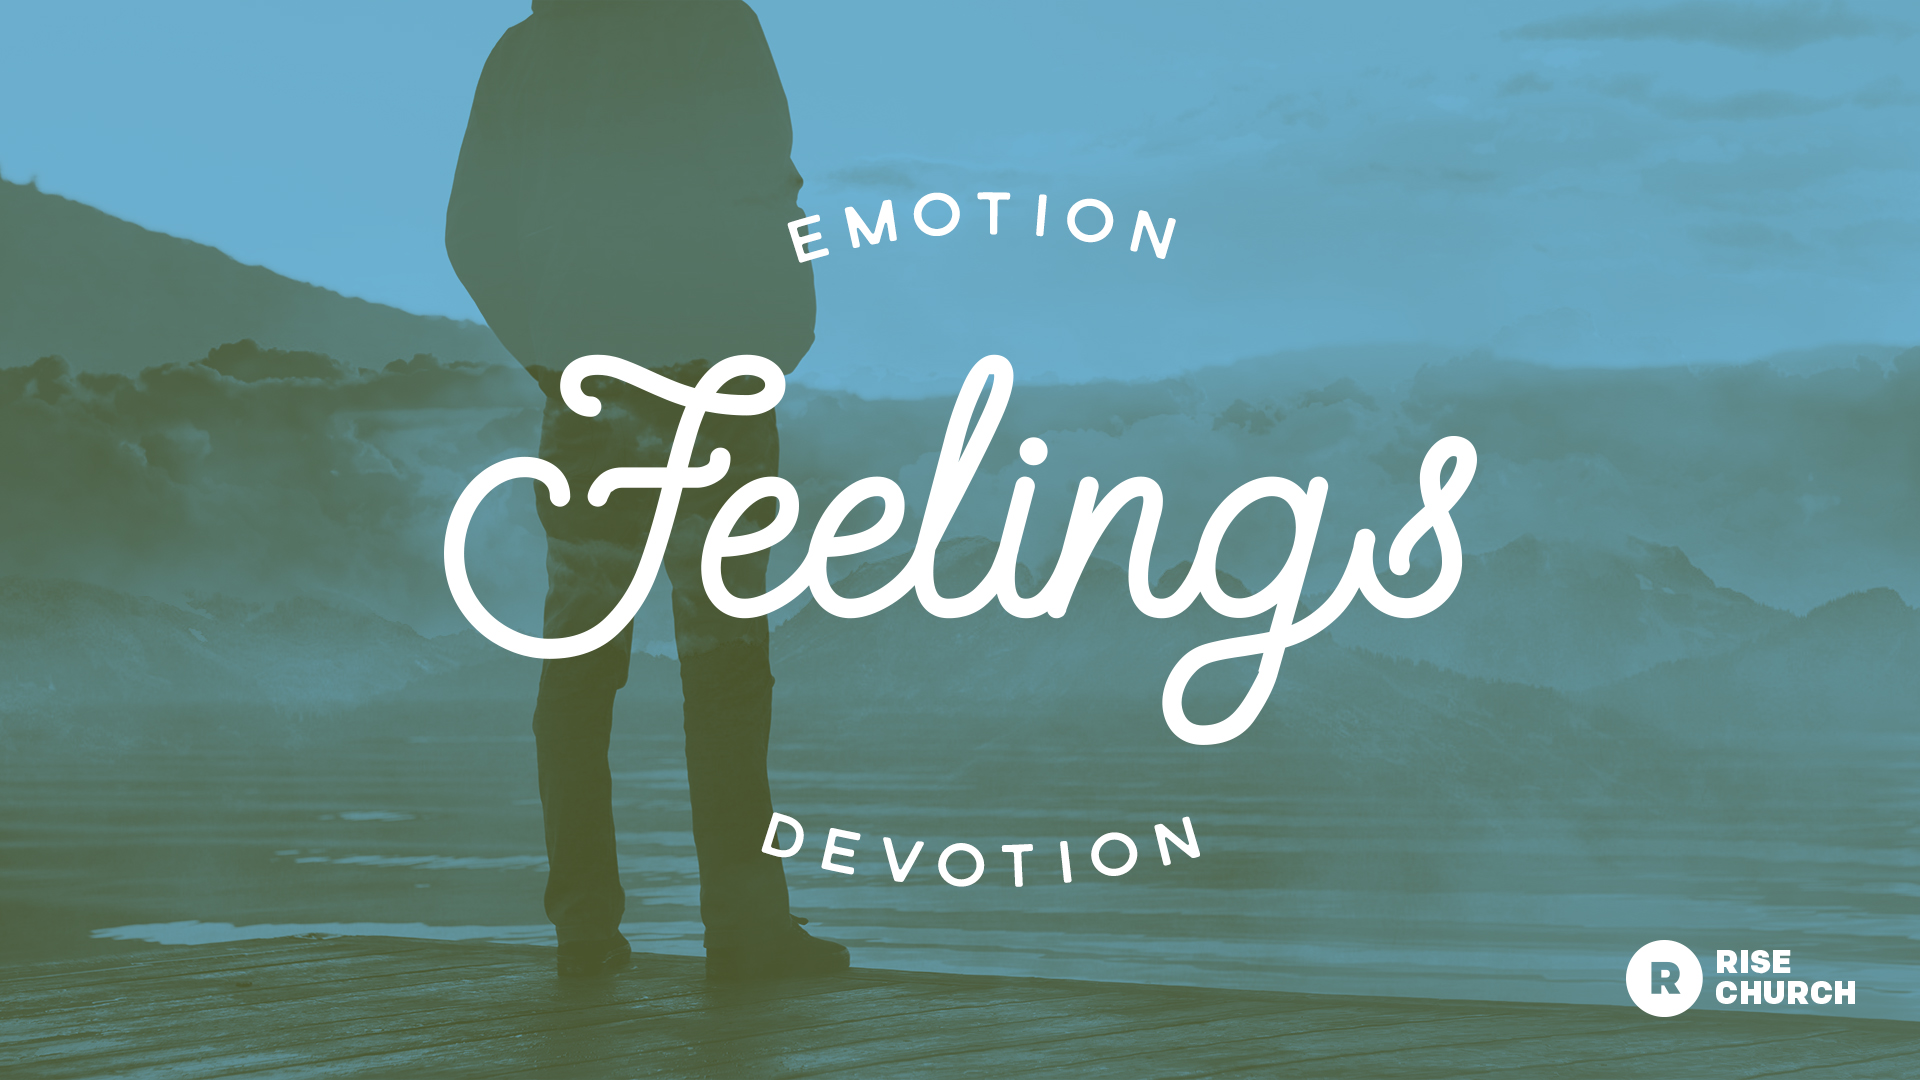 Visalia Church Sermon Feelings and Emotion